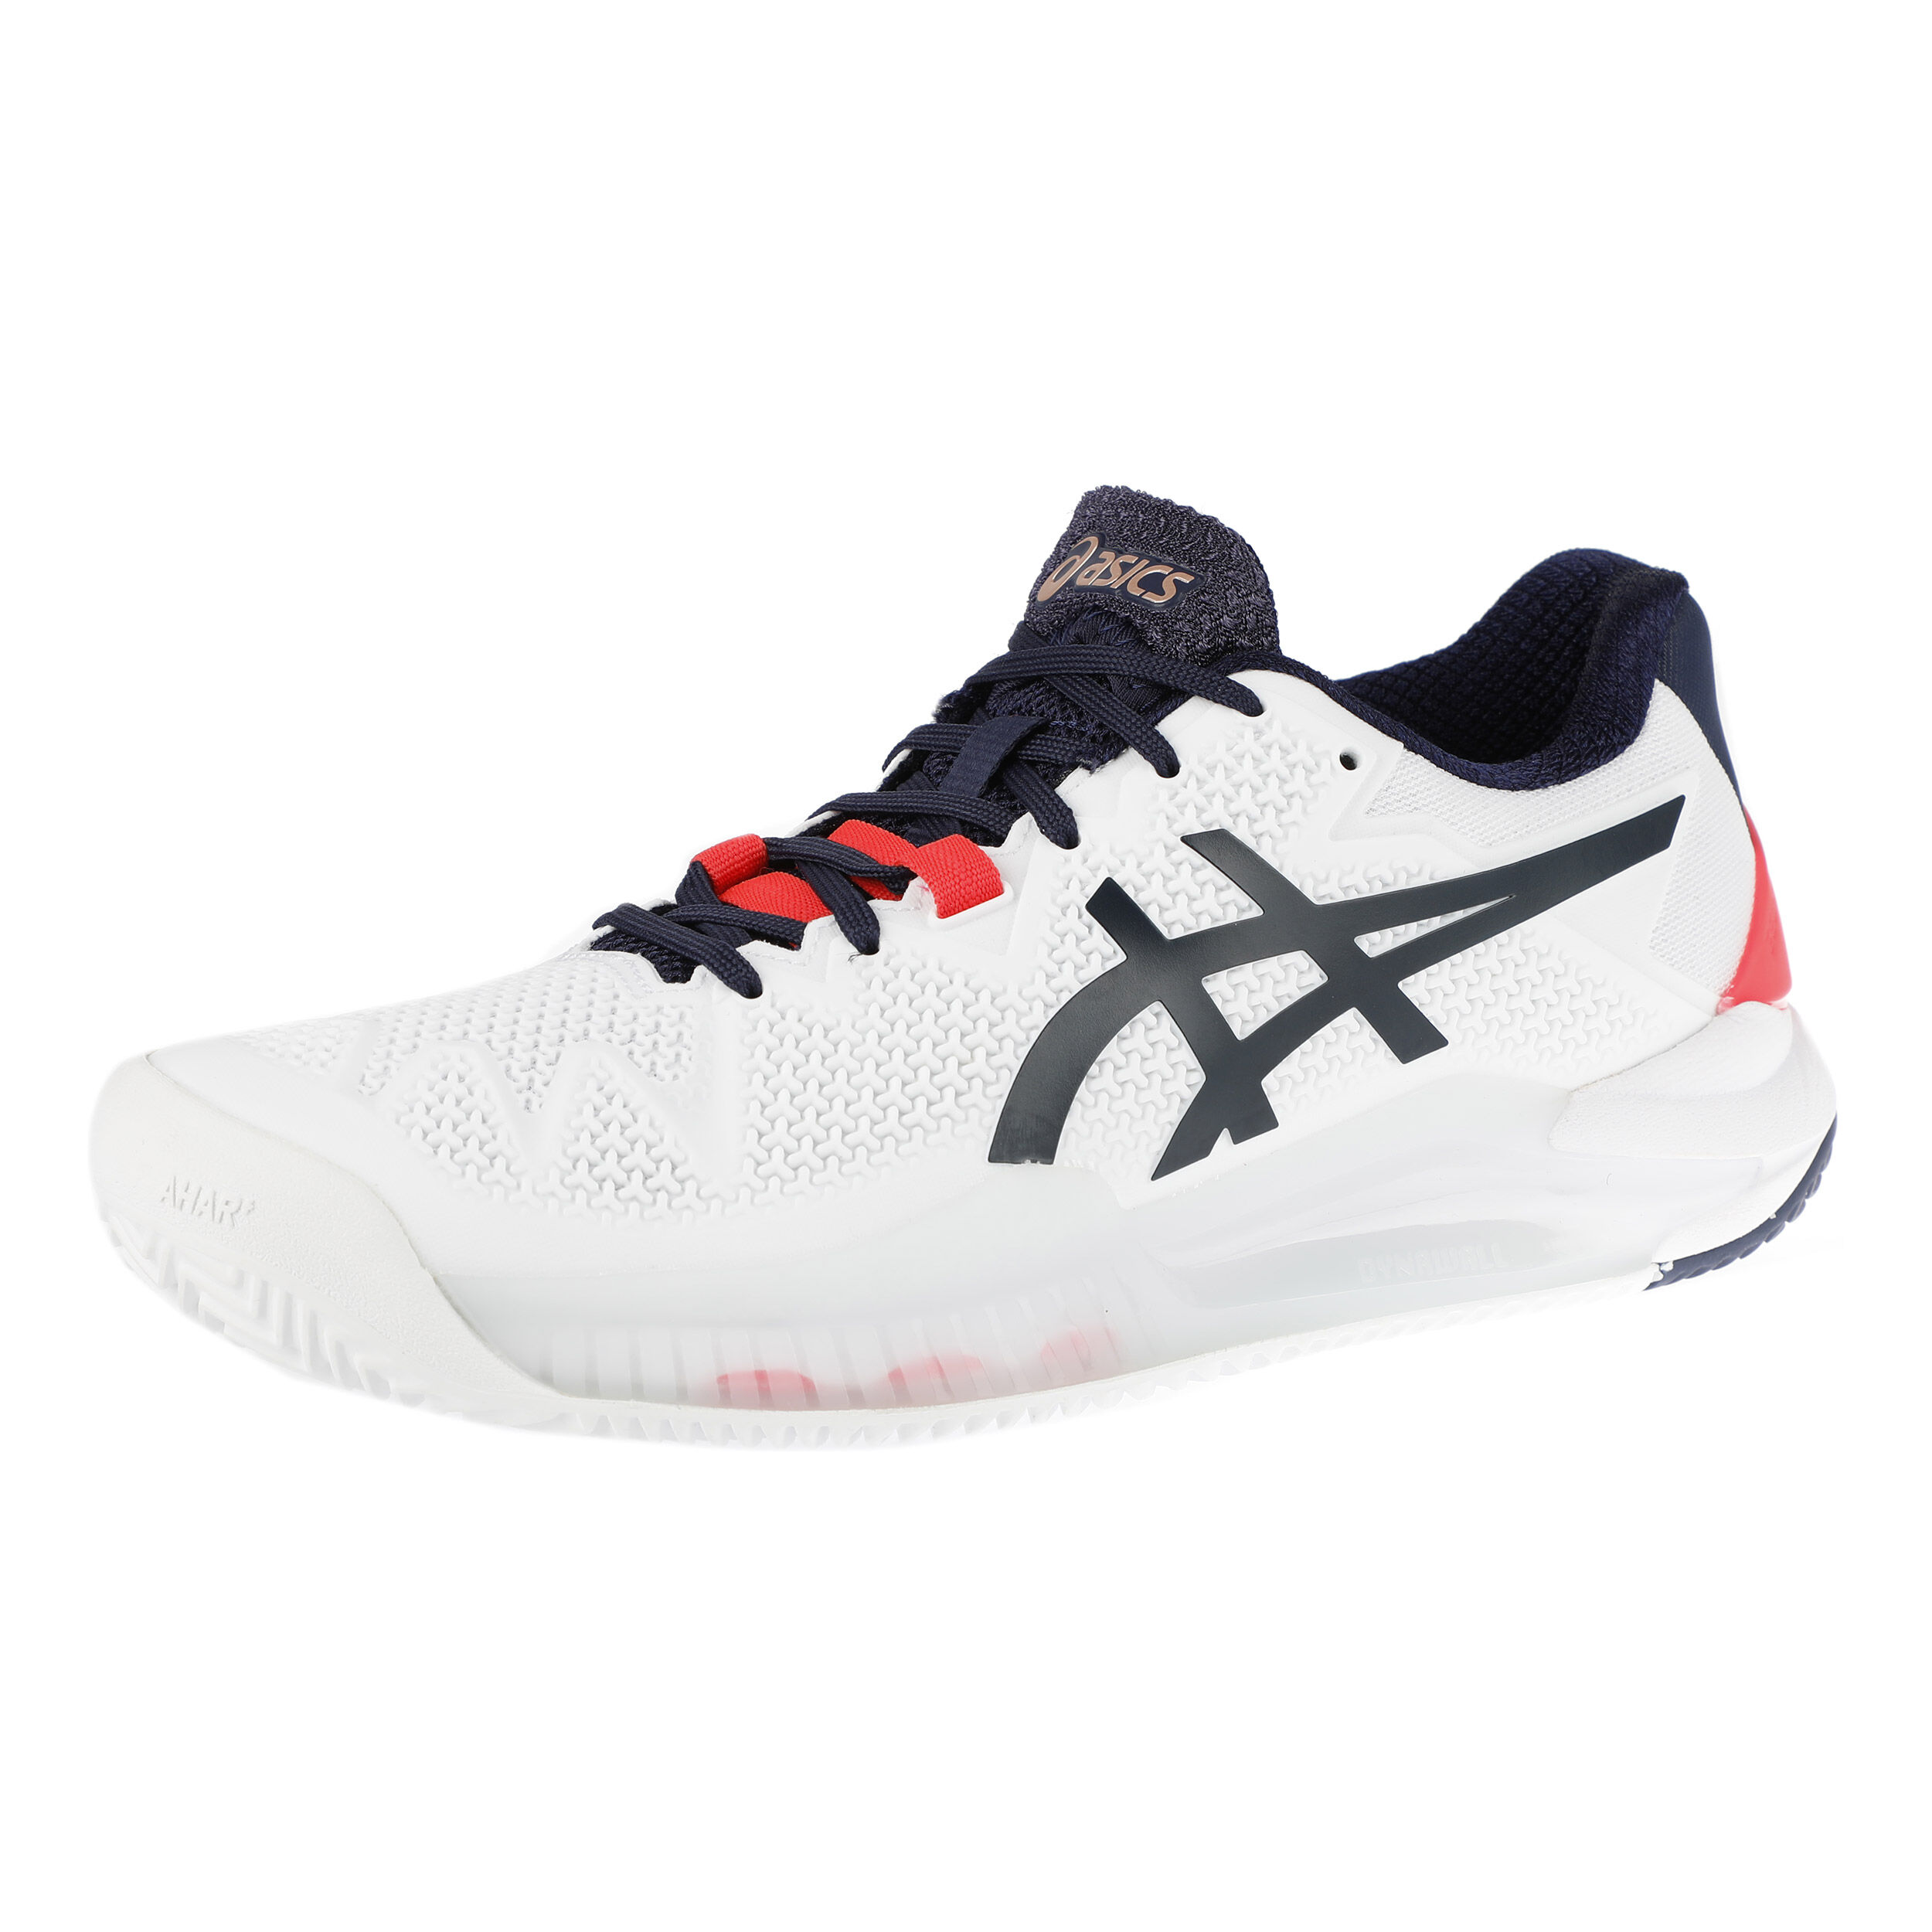 Asics Gel Resolution 8 Clay Scarpa Per Terra Rossa Donna